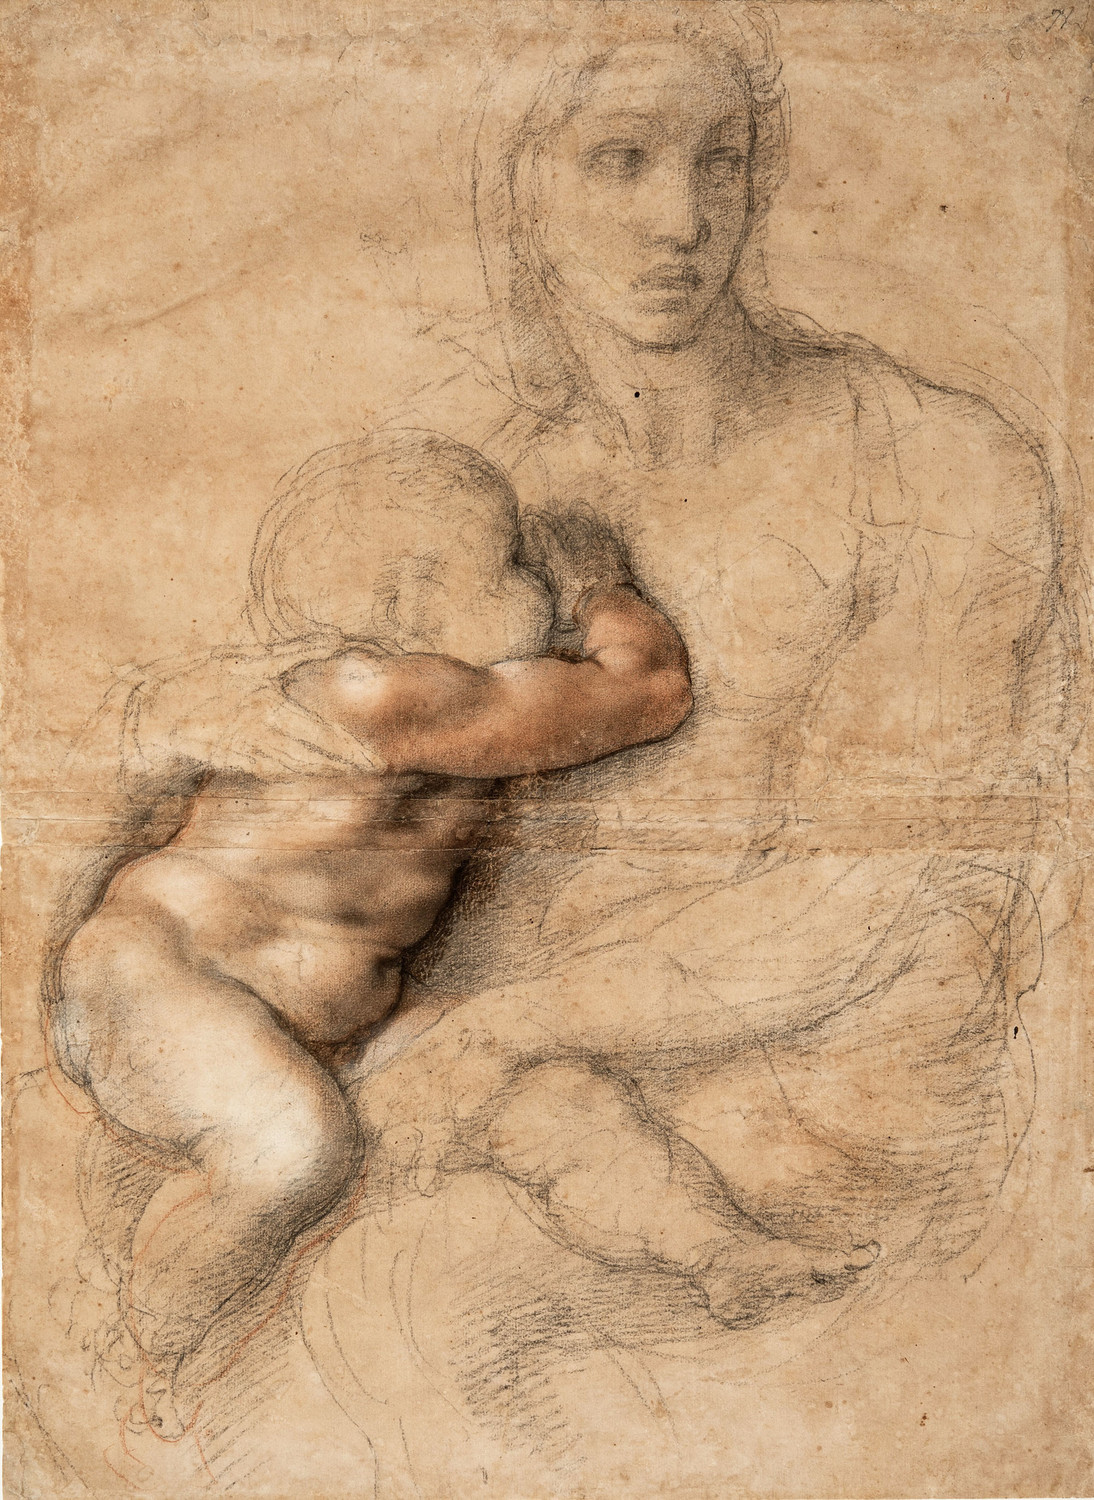 A Madonna and Child Drawing, by Michelangelo, at right, 1525–1530, is achieved through black and red chalk, white gouache, brush and brown wash.